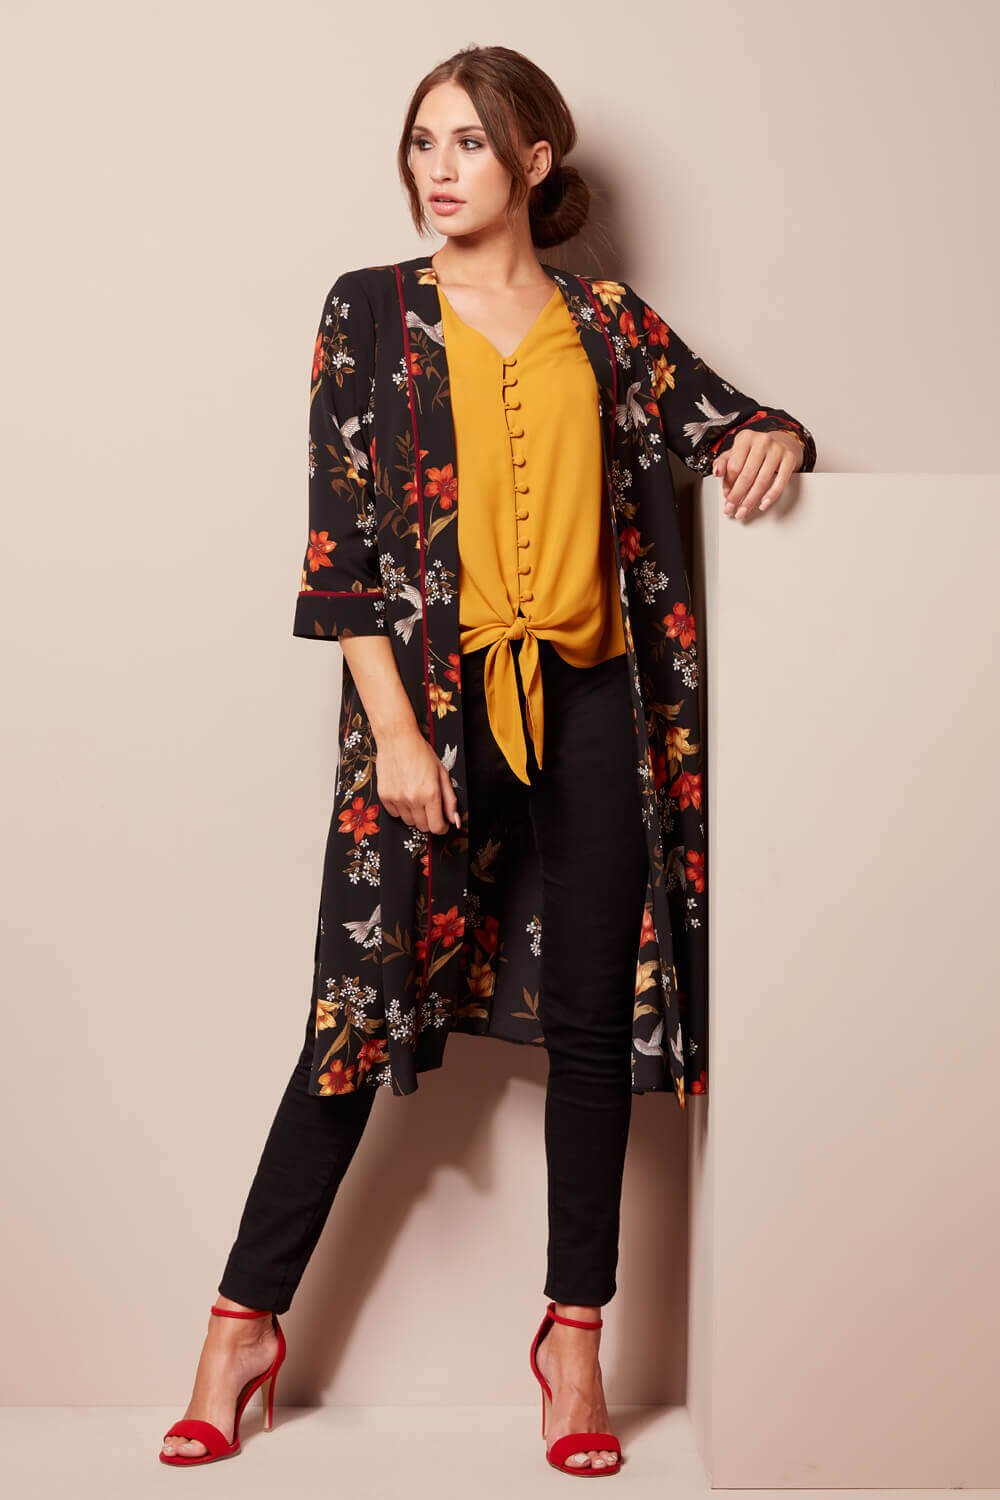 Roman-Originals-Women-039-s-Floral-Longline-Jacket-Kimono-in-Multi-Sizes-10-20 thumbnail 7